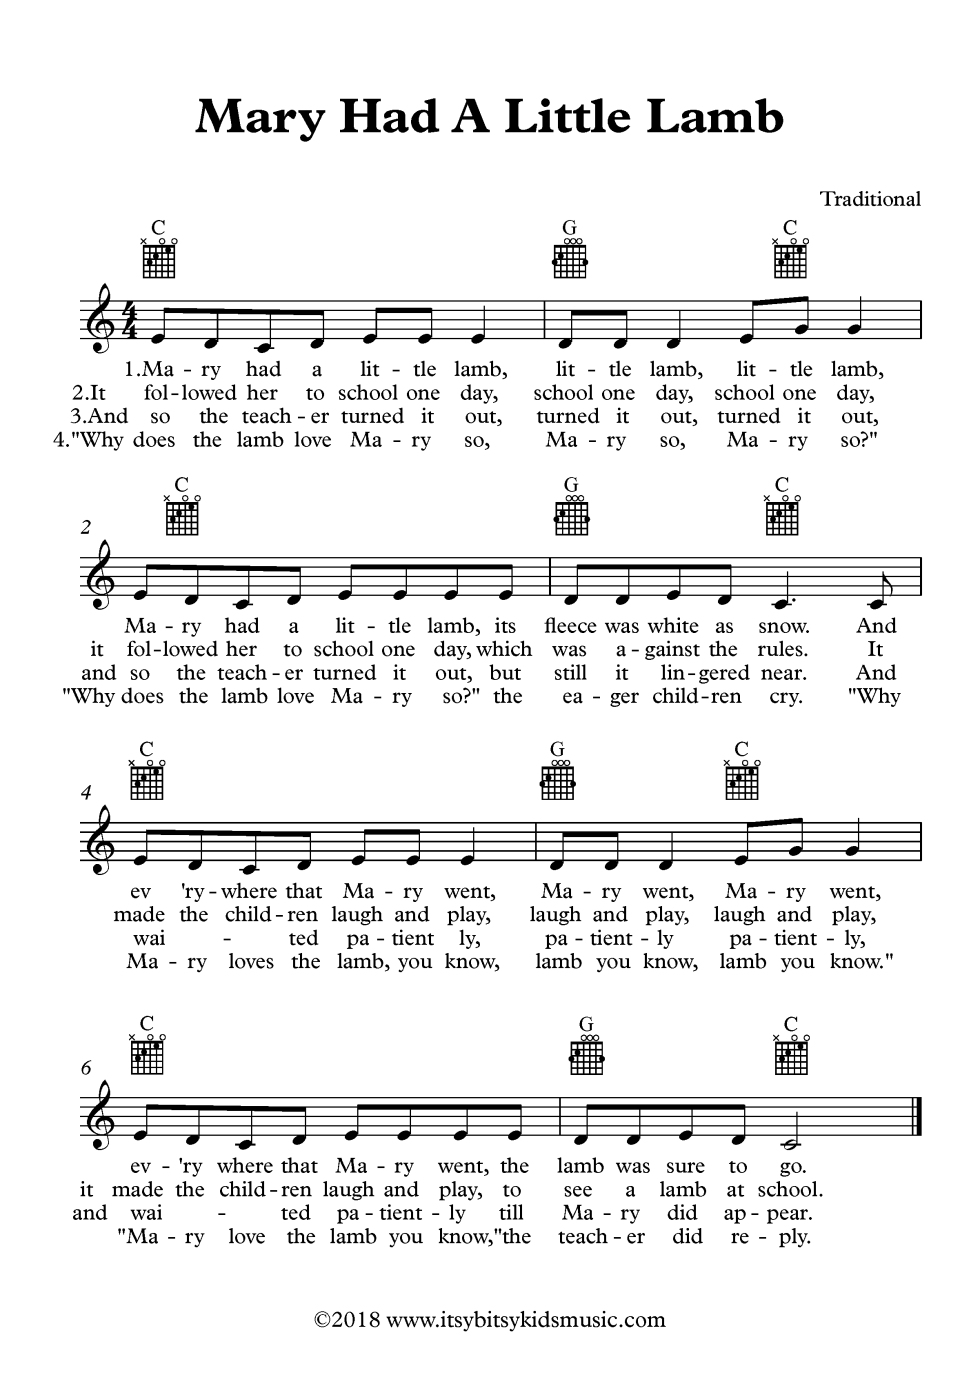 Mary Had A Little Lamb Sheet Music With Chords And Lyrics Itsy